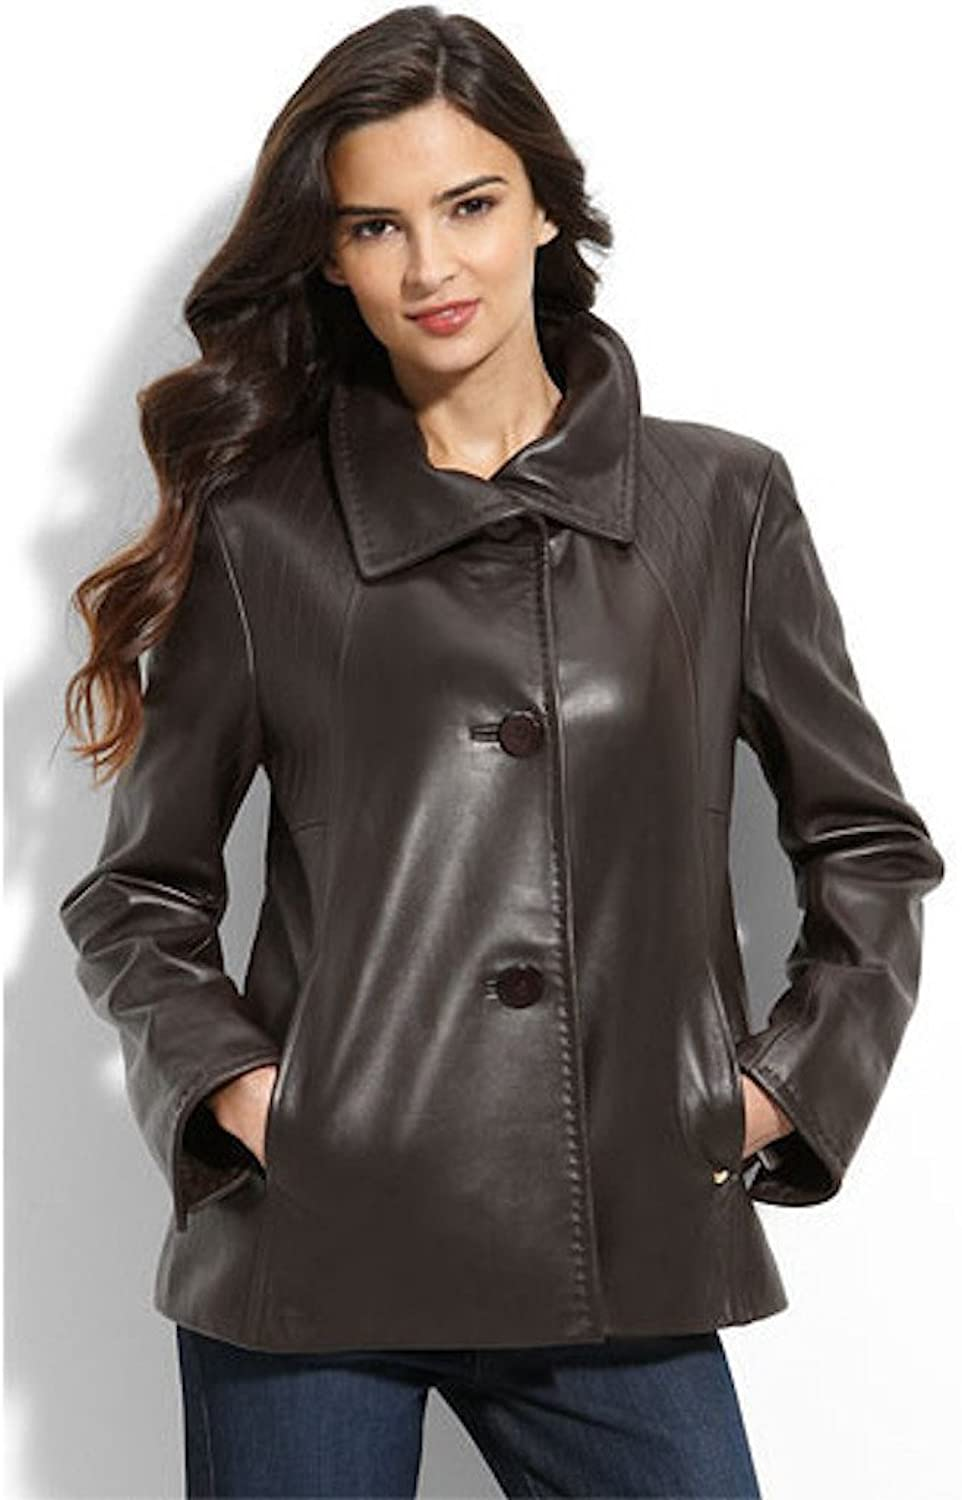 Fadcloset Womens Lambskin 3 Button Leather Coat by B&A